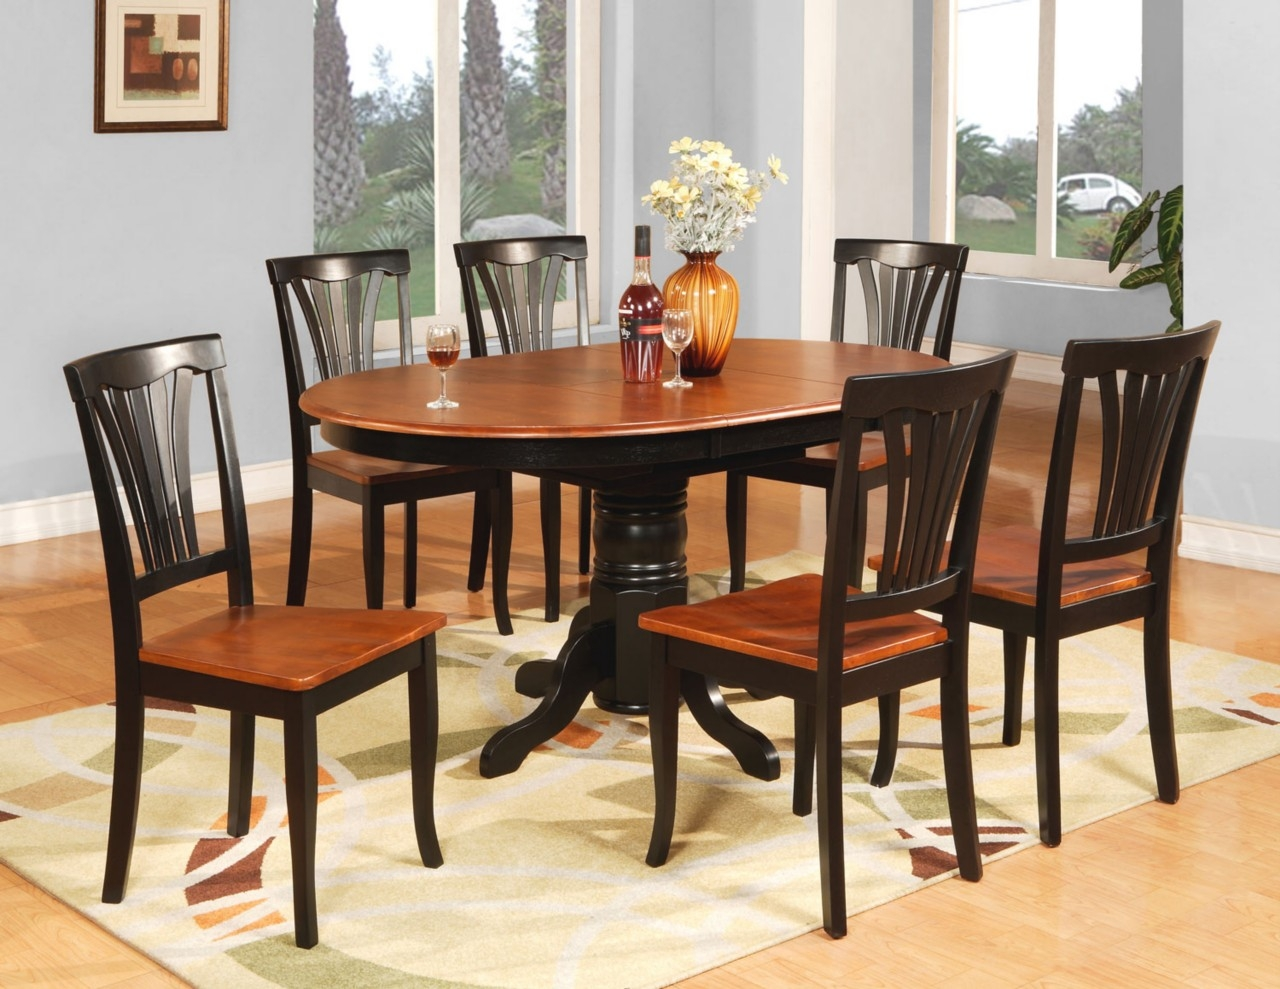 Dining Tables Glamorous Oval Dining Table Set Oval Table Sets Oval ...